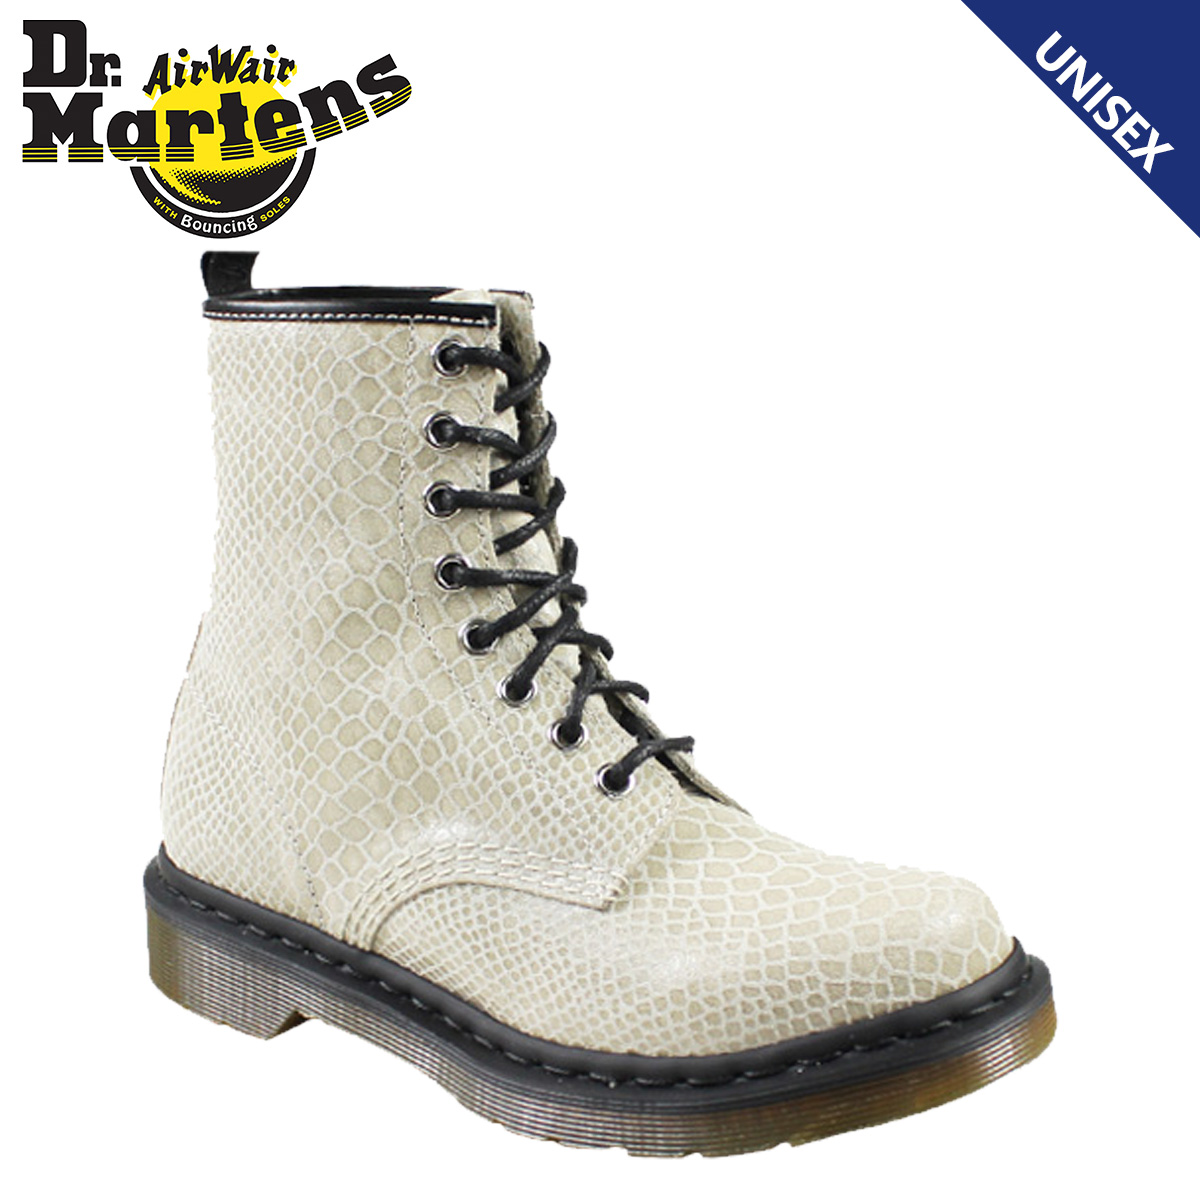 189b9e8c4124 Dr.Martens and☆ 1460 WOMENS PART OF THE CORE COLLECTION ☆ 1460 8 hole boots    8 EYELET 1460 BOOT